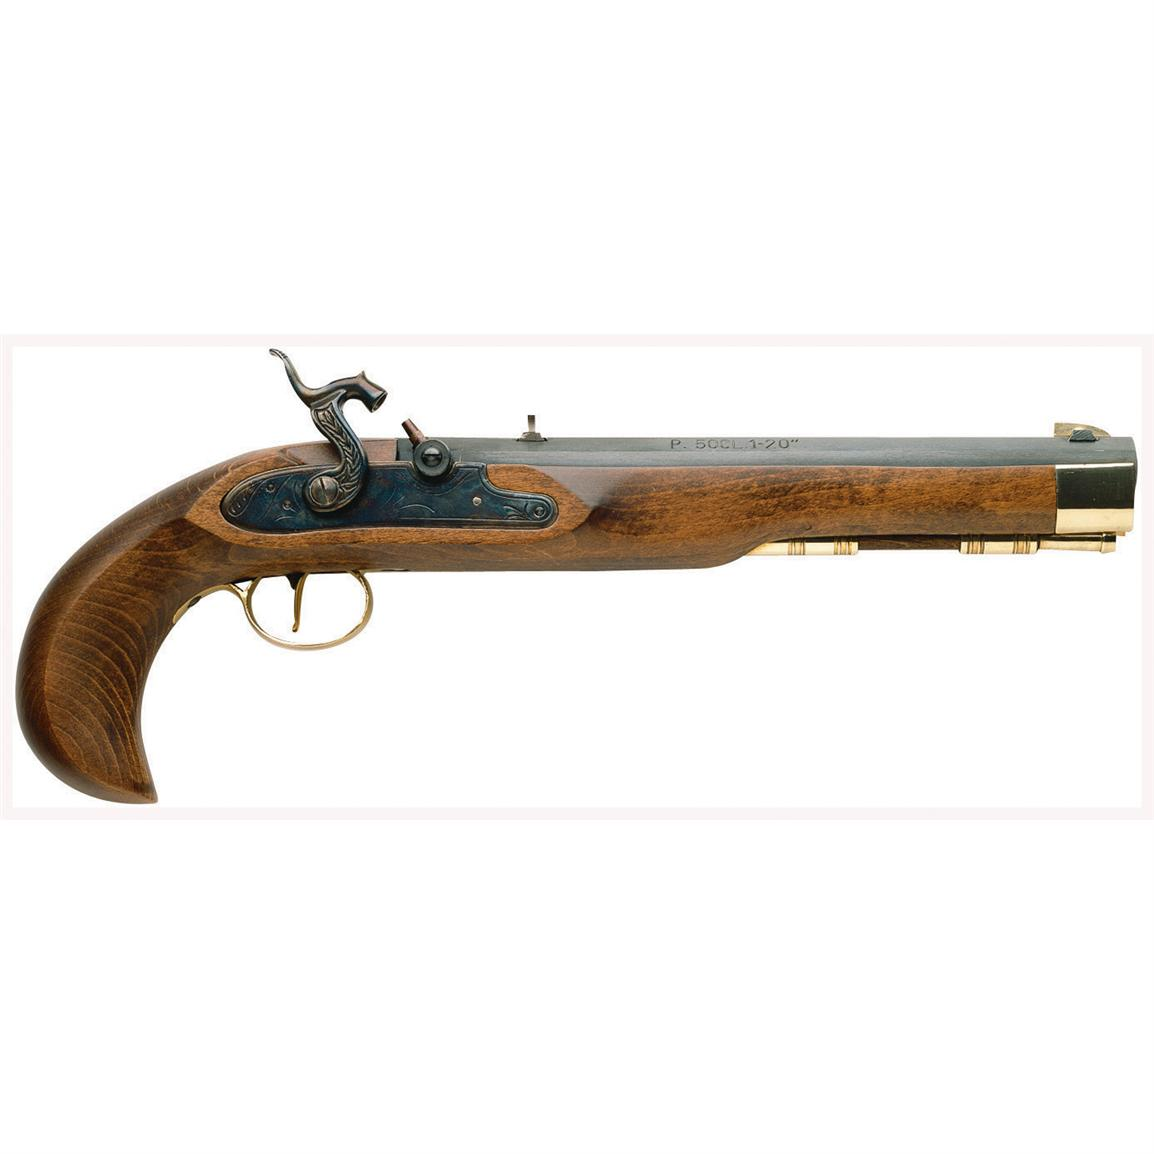 Traditions 50 Cal. Percussion Kentucky Pistol